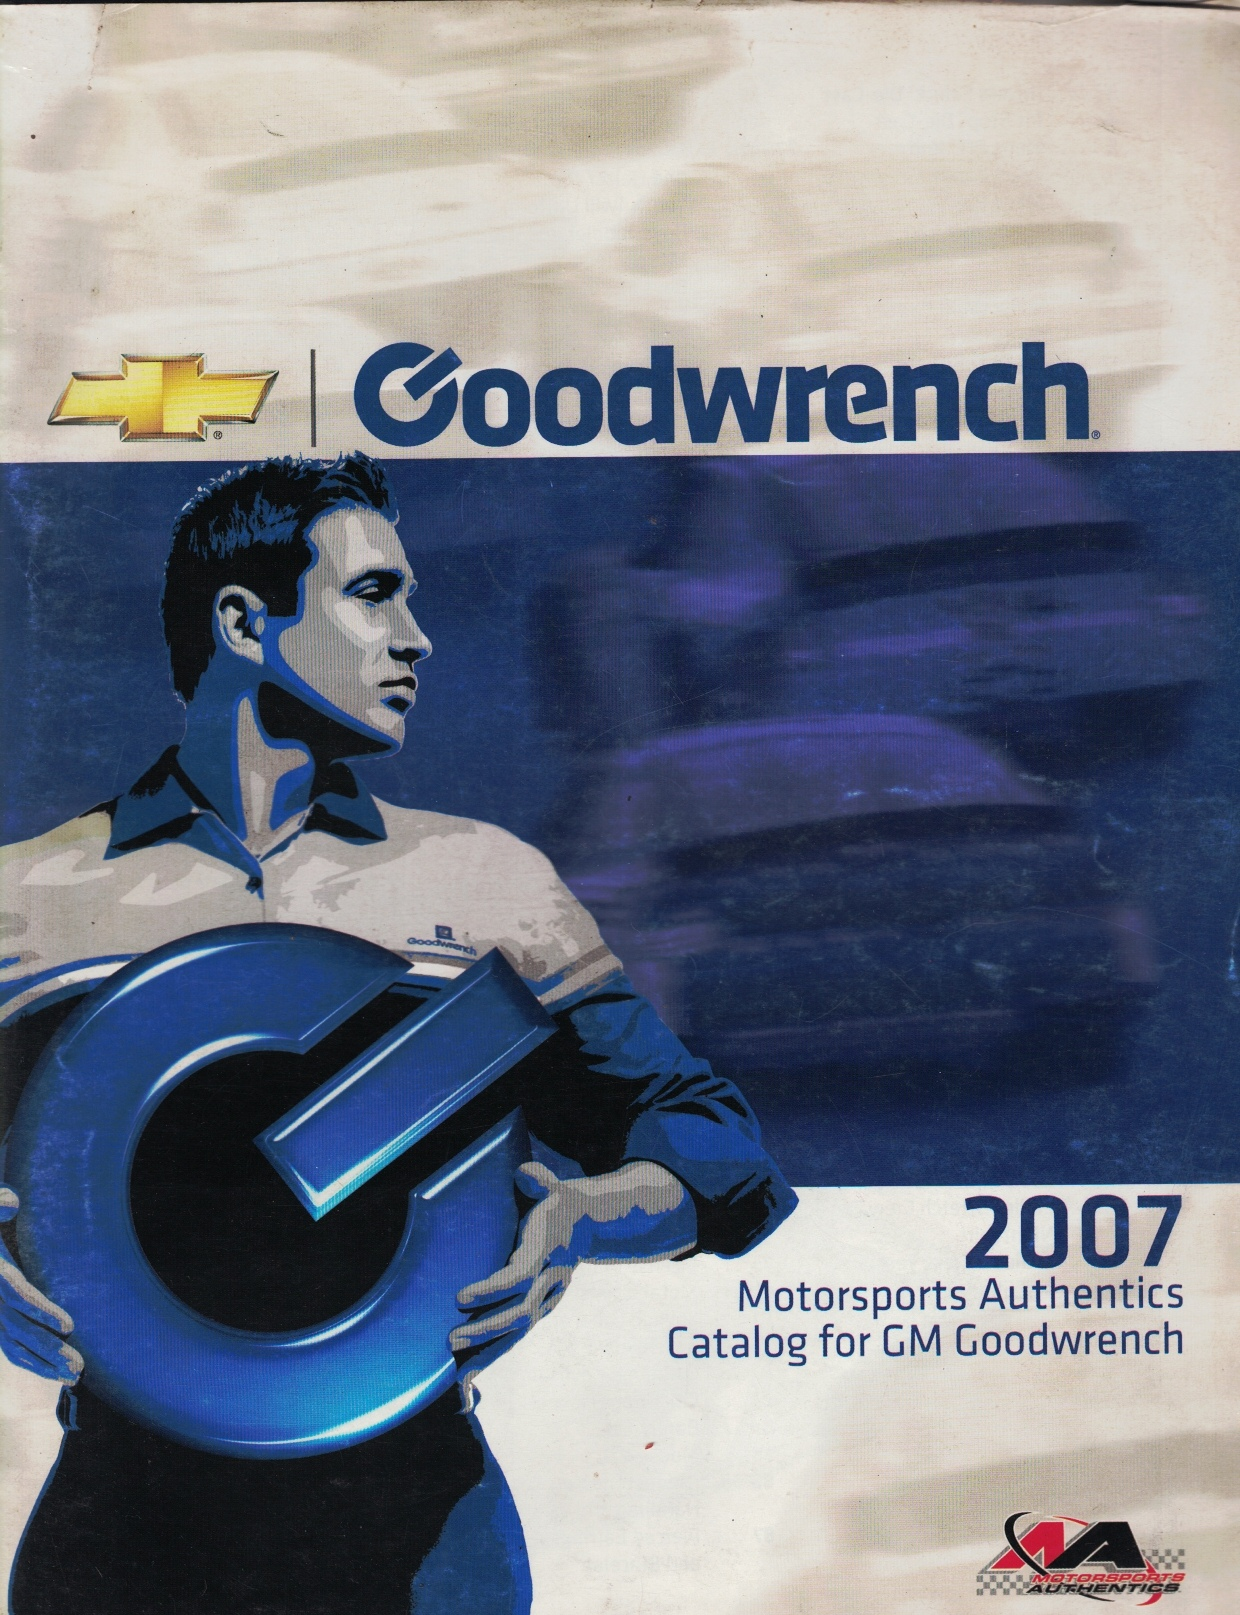 Image for 2007 Motorsports Authentics Catalog for GM Goodwrench